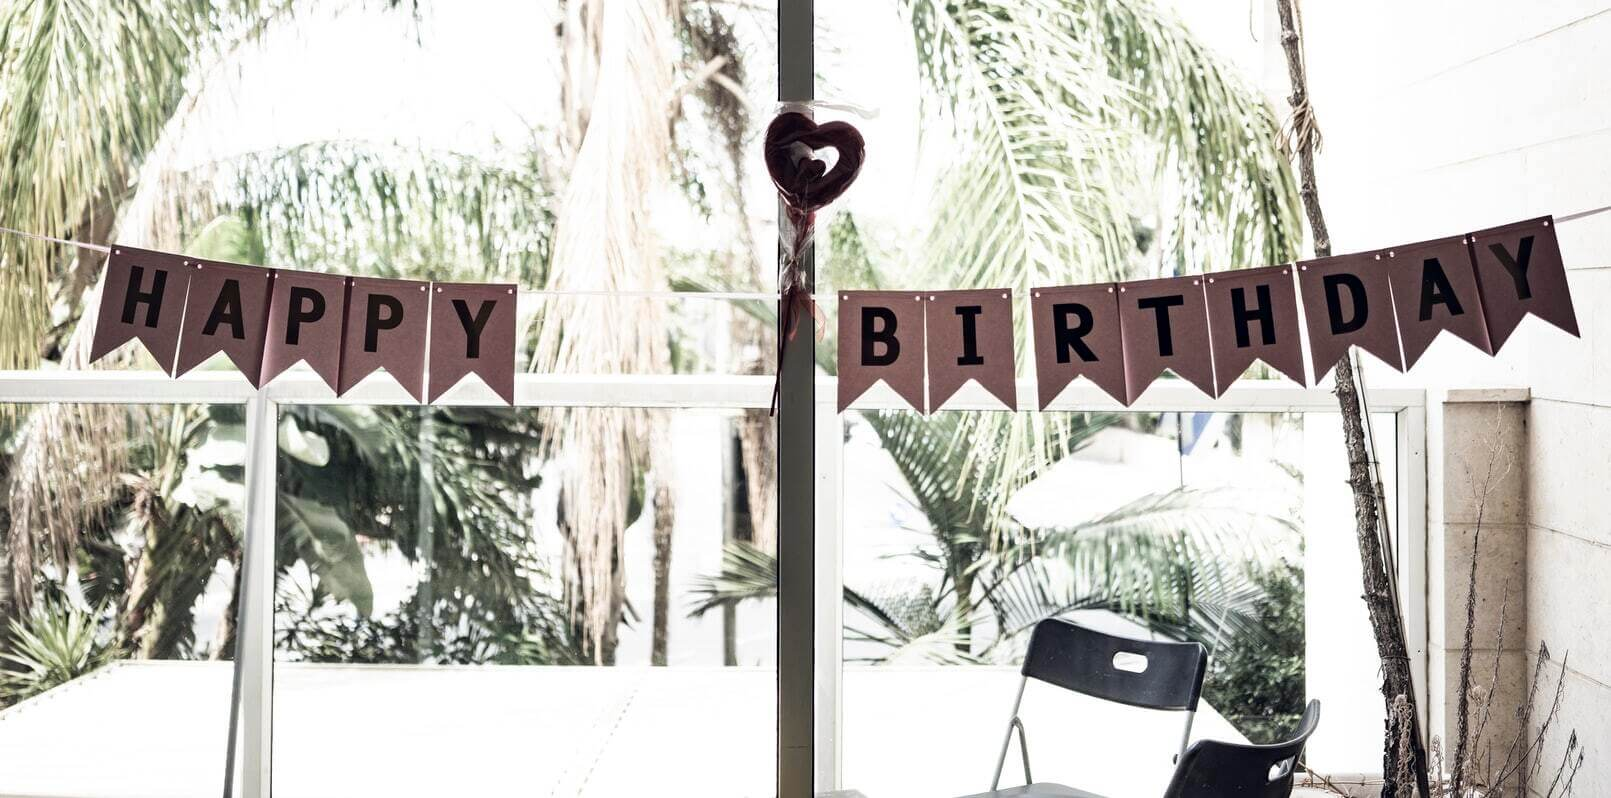 A happy birthday banner at a party